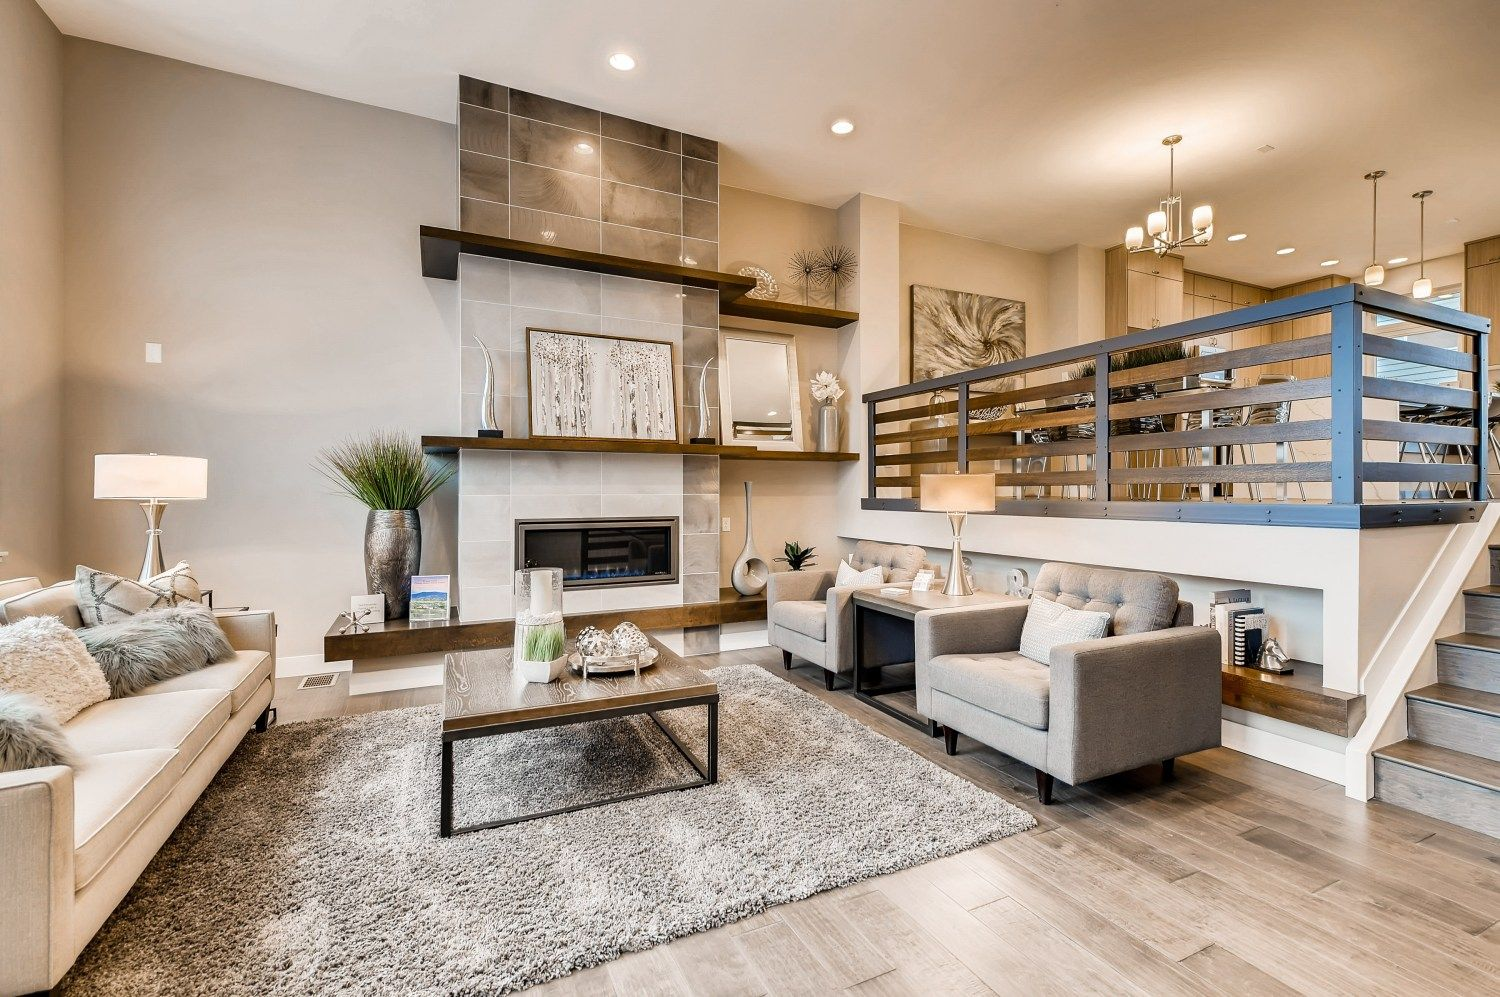 Living Area featured in the Matador Series - Interior Unit By Koelbel Urban Homes in Denver, CO